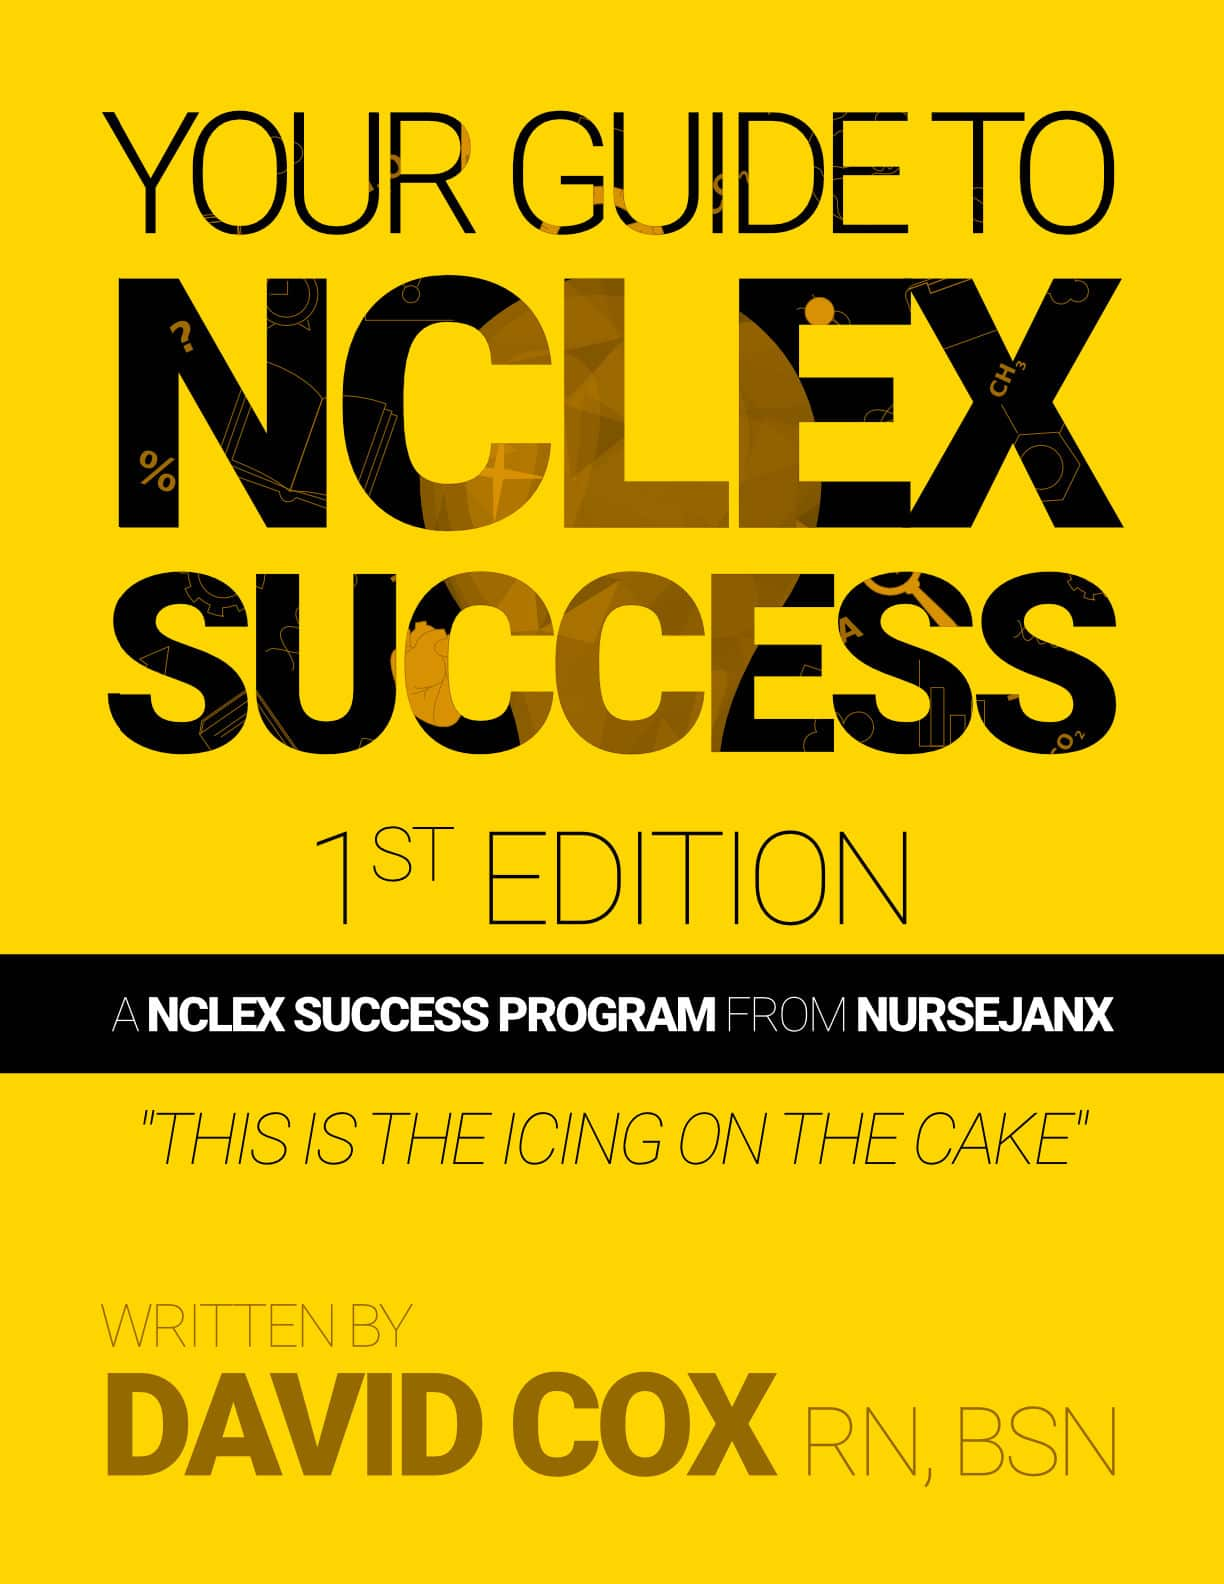 How is the NCLEX Scored? Quick Facts for NCLEX 2019 - NCLEX - Nursejanx